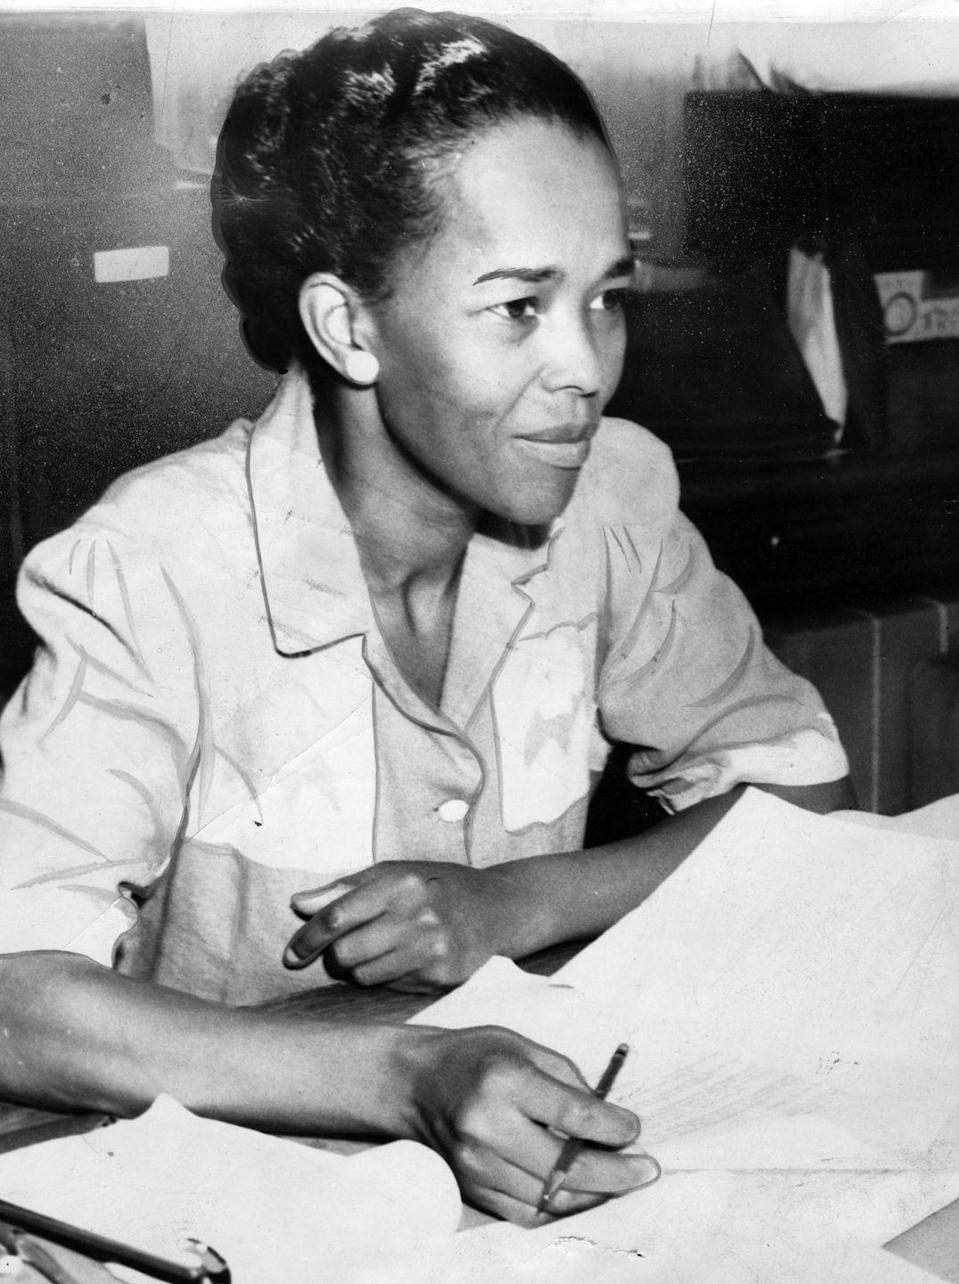 """<p>Baker was a civil rights activist who worked for a number of organizations throughout her lifetime. After graduating as valedictorian from Shaw University in North Carolina, Baker moved to New York City to help start the Young Negroes Cooperative League<span class=""""redactor-invisible-space"""">. She started working for the NAACP in 1940, and </span>co-founded the organization In Friendship to fight against Jim Crow laws in 1955. In 1957, she was asked to help organize Martin Luther King Jr.'s Southern Christian Leadership Conference and also helped form the Student Nonviolent Coordinating Committee, SNCC, which became one of the biggest <a href=""""http://ellabakercenter.org/about/who-was-ella-baker"""" rel=""""nofollow noopener"""" target=""""_blank"""" data-ylk=""""slk:human rights advocates"""" class=""""link rapid-noclick-resp"""">human rights advocates</a> in the country. </p>"""